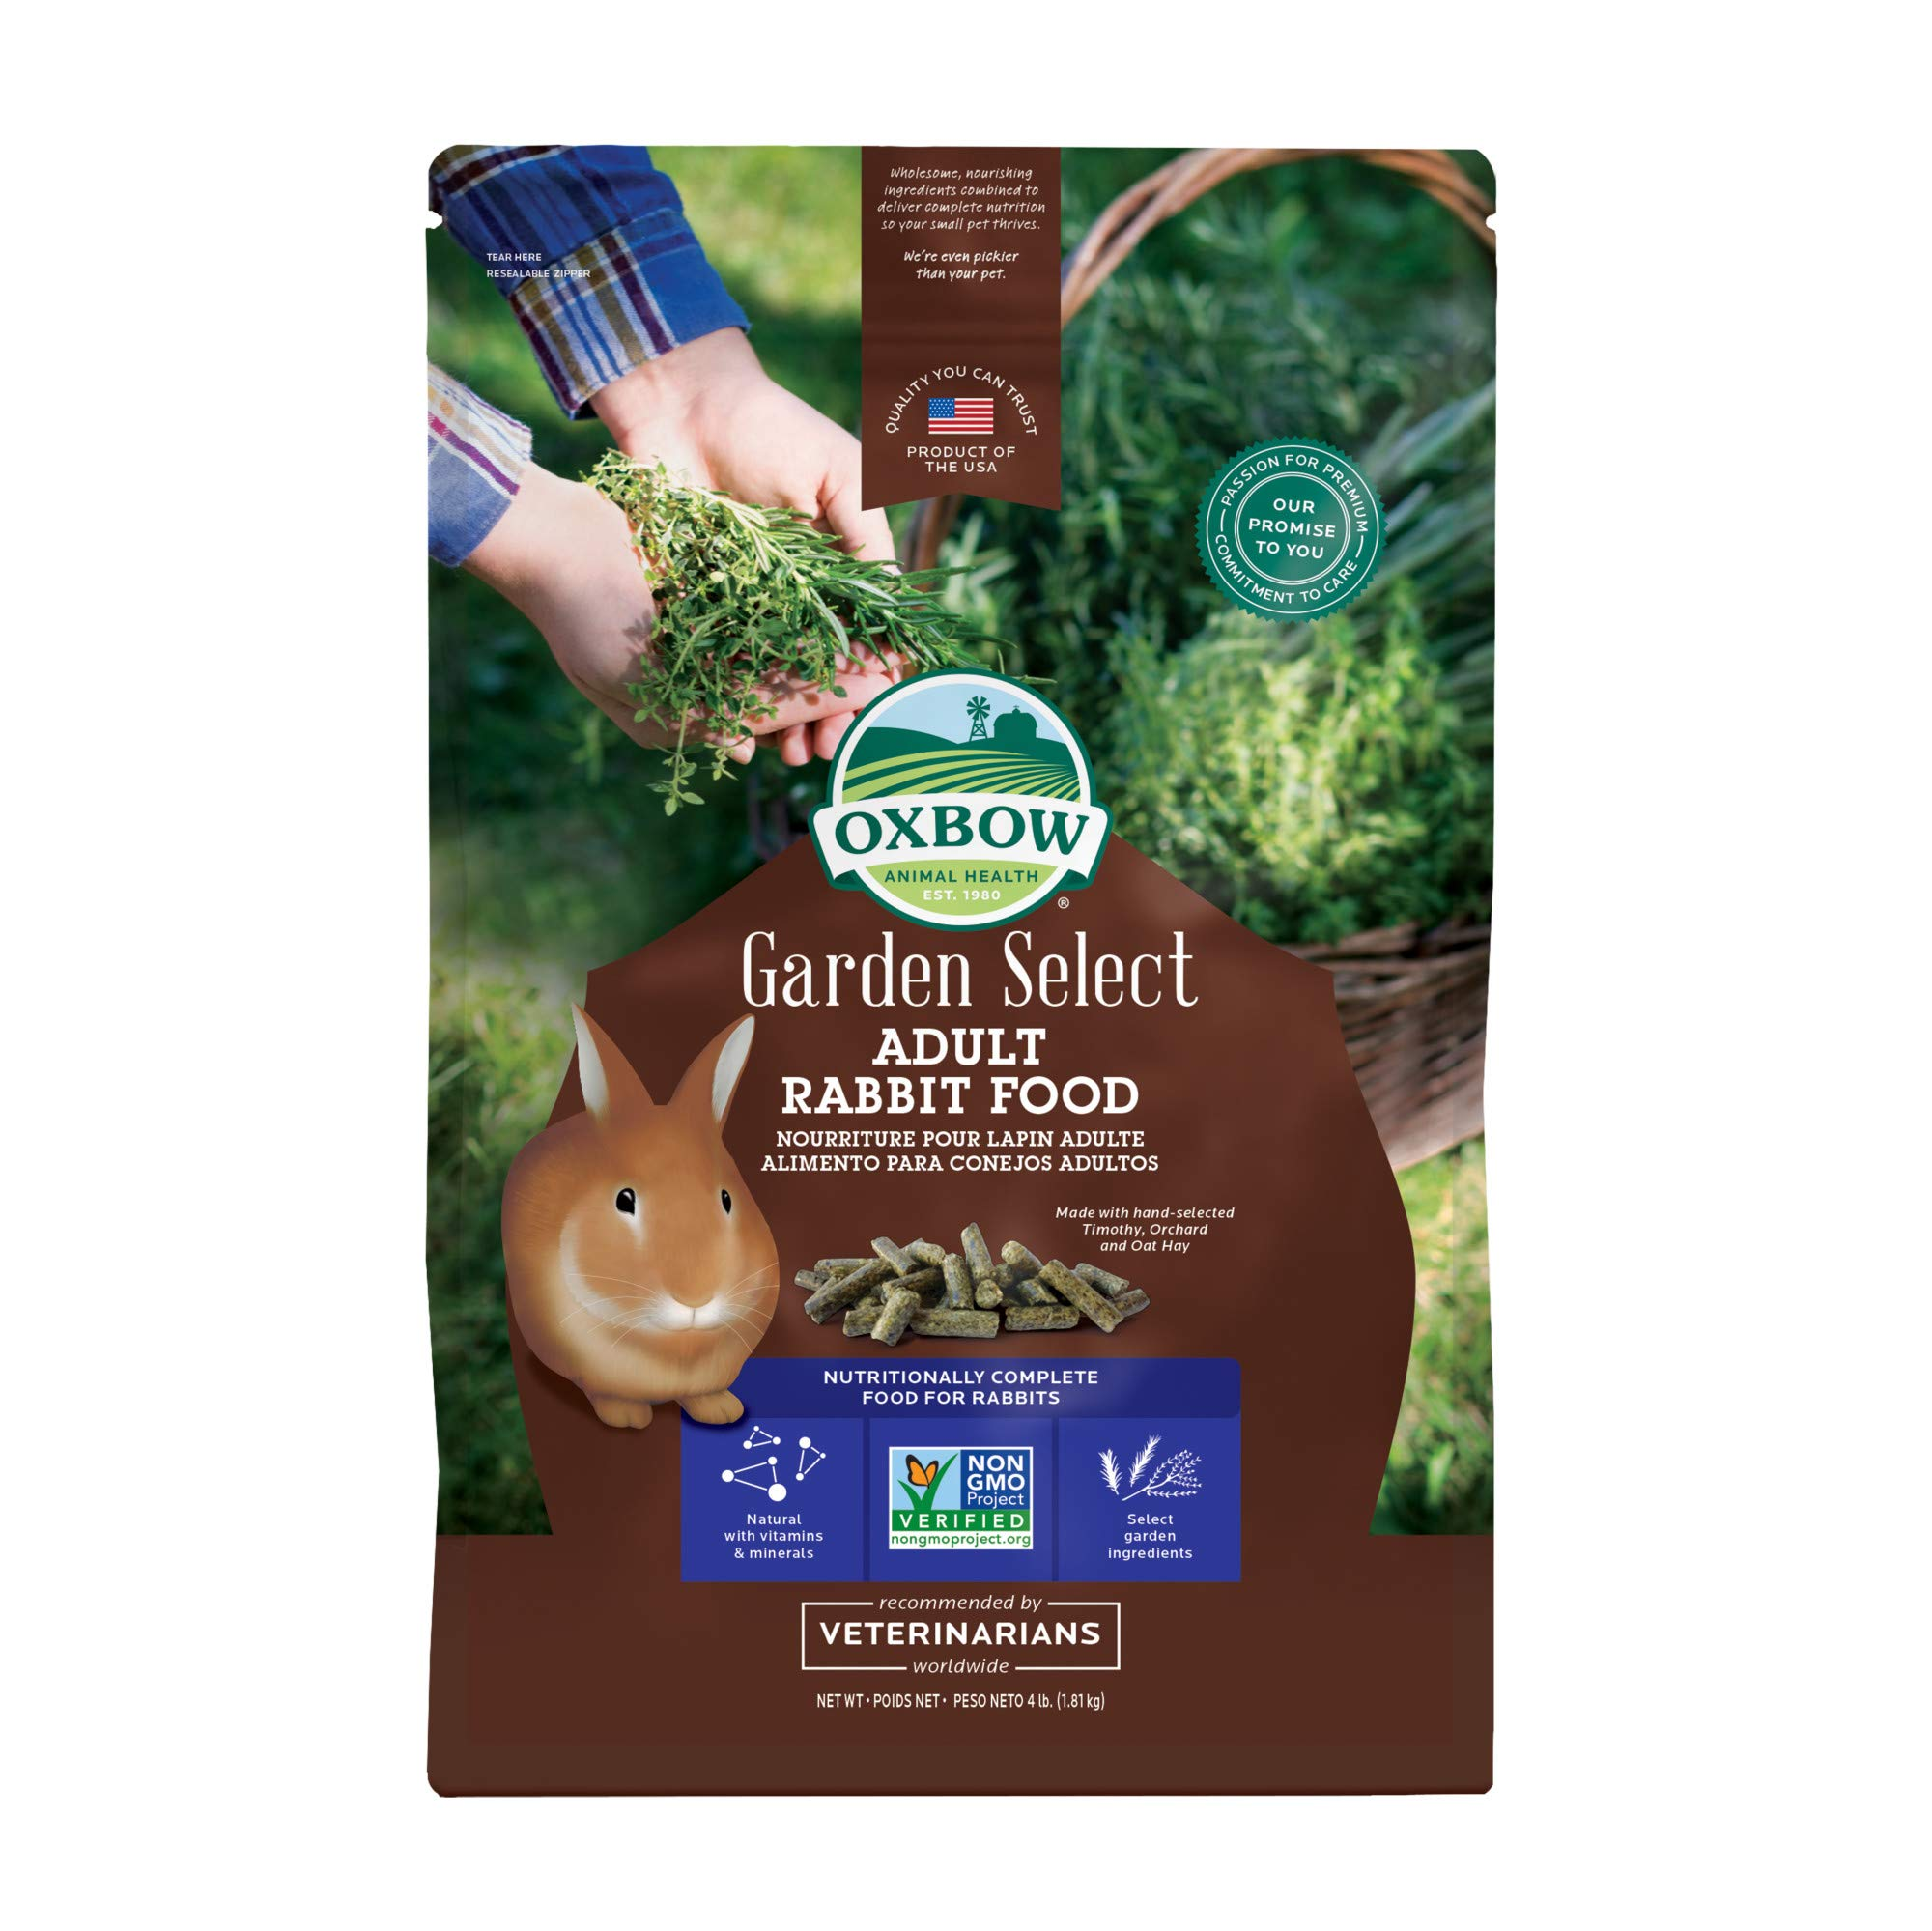 Oxbow Animal Health Garden Select Adult Rabbit Food, Garden-Inspired Recipe for Adult Rabbits, No Soy or Wheat, Non-GMO, Made in The USA, 4 Pound Bag